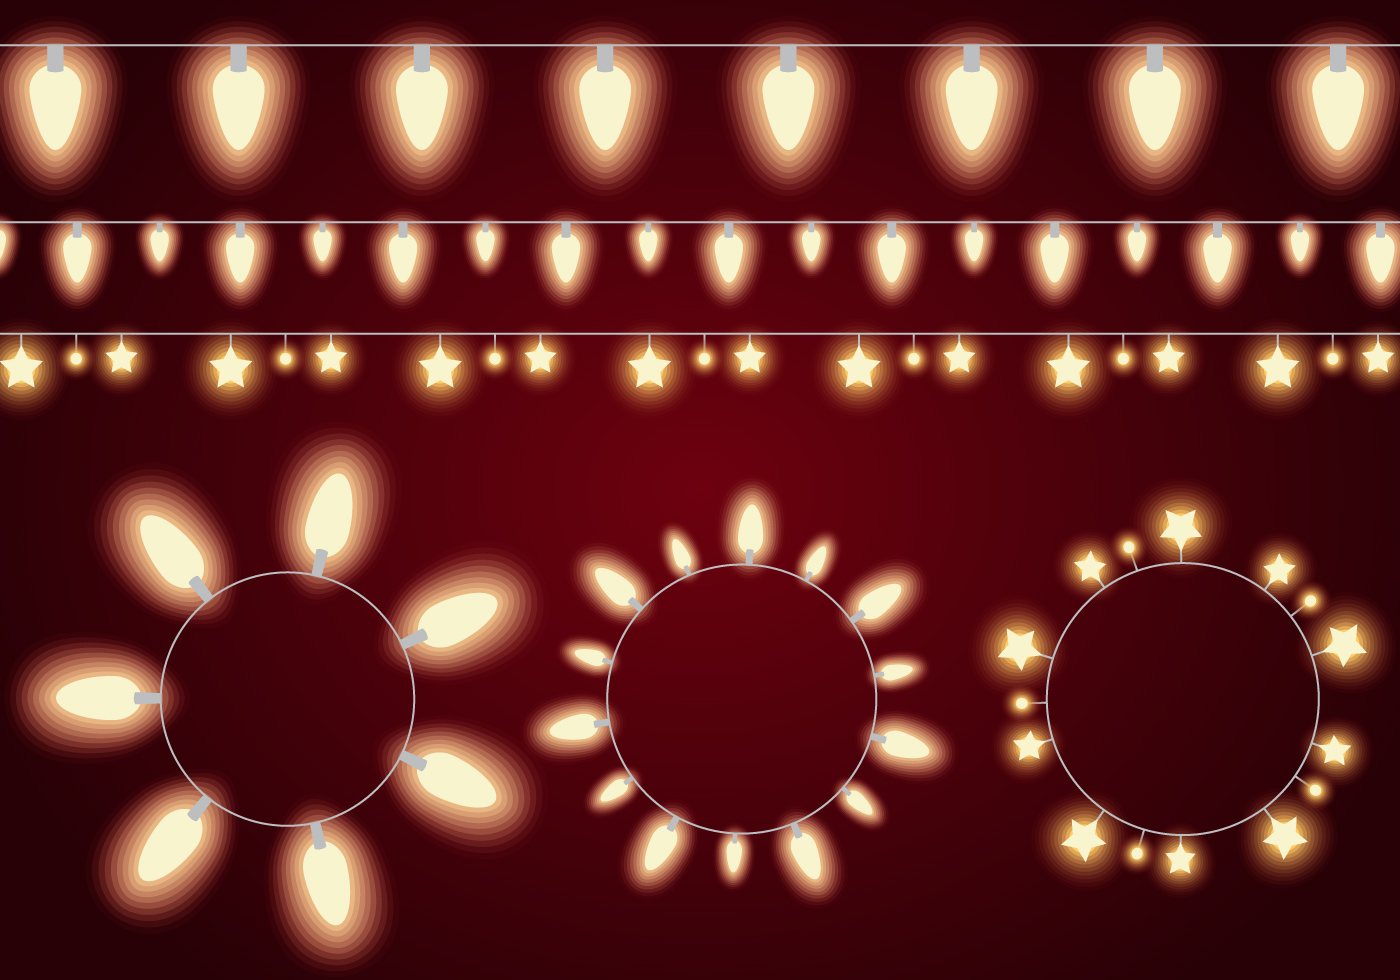 String Lights Vector : Glowing Light String Vectors - Download Free Vector Art, Stock Graphics & Images